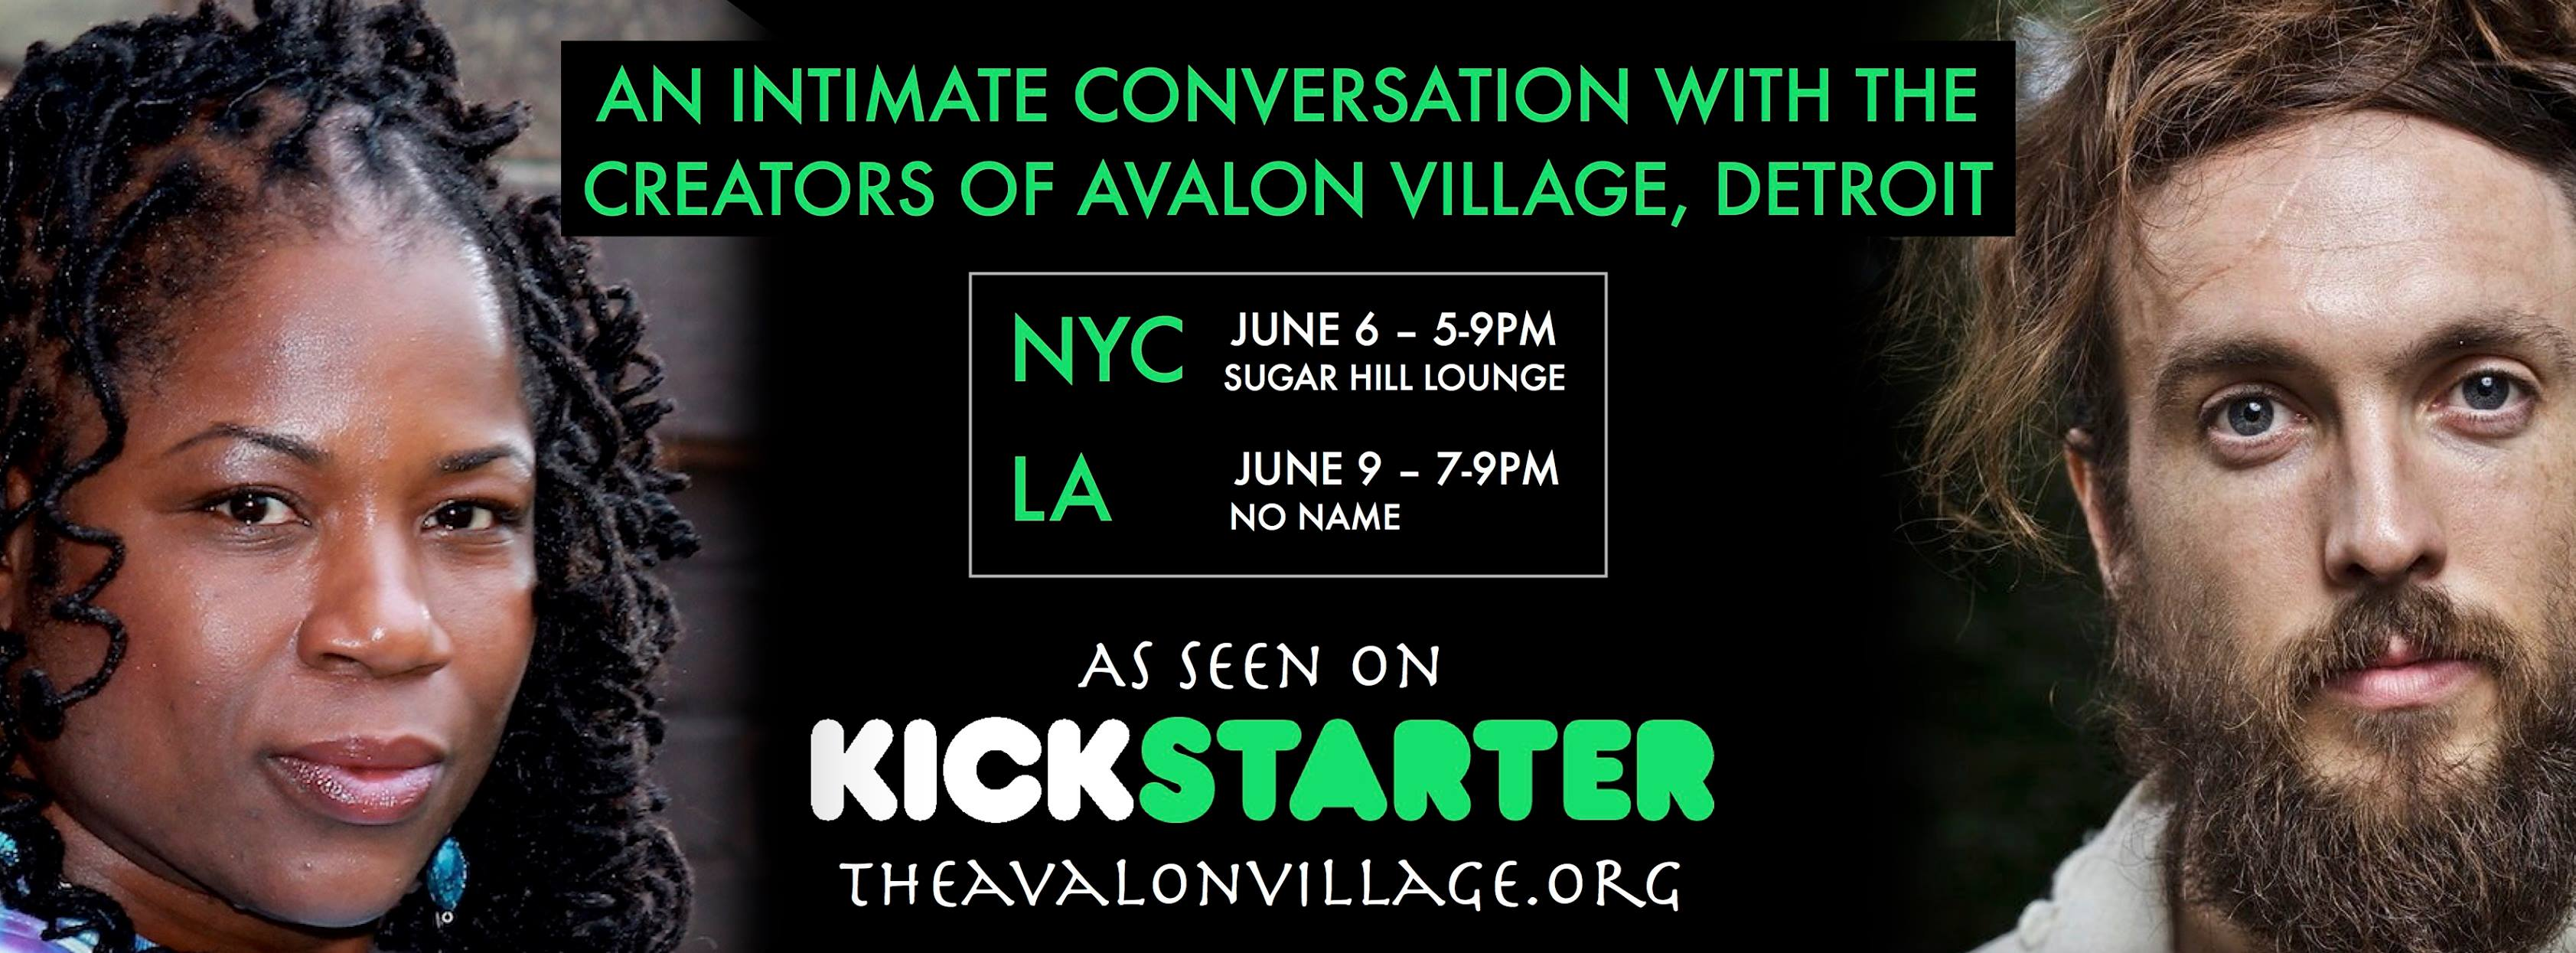 Avalon Village BK Event Banner